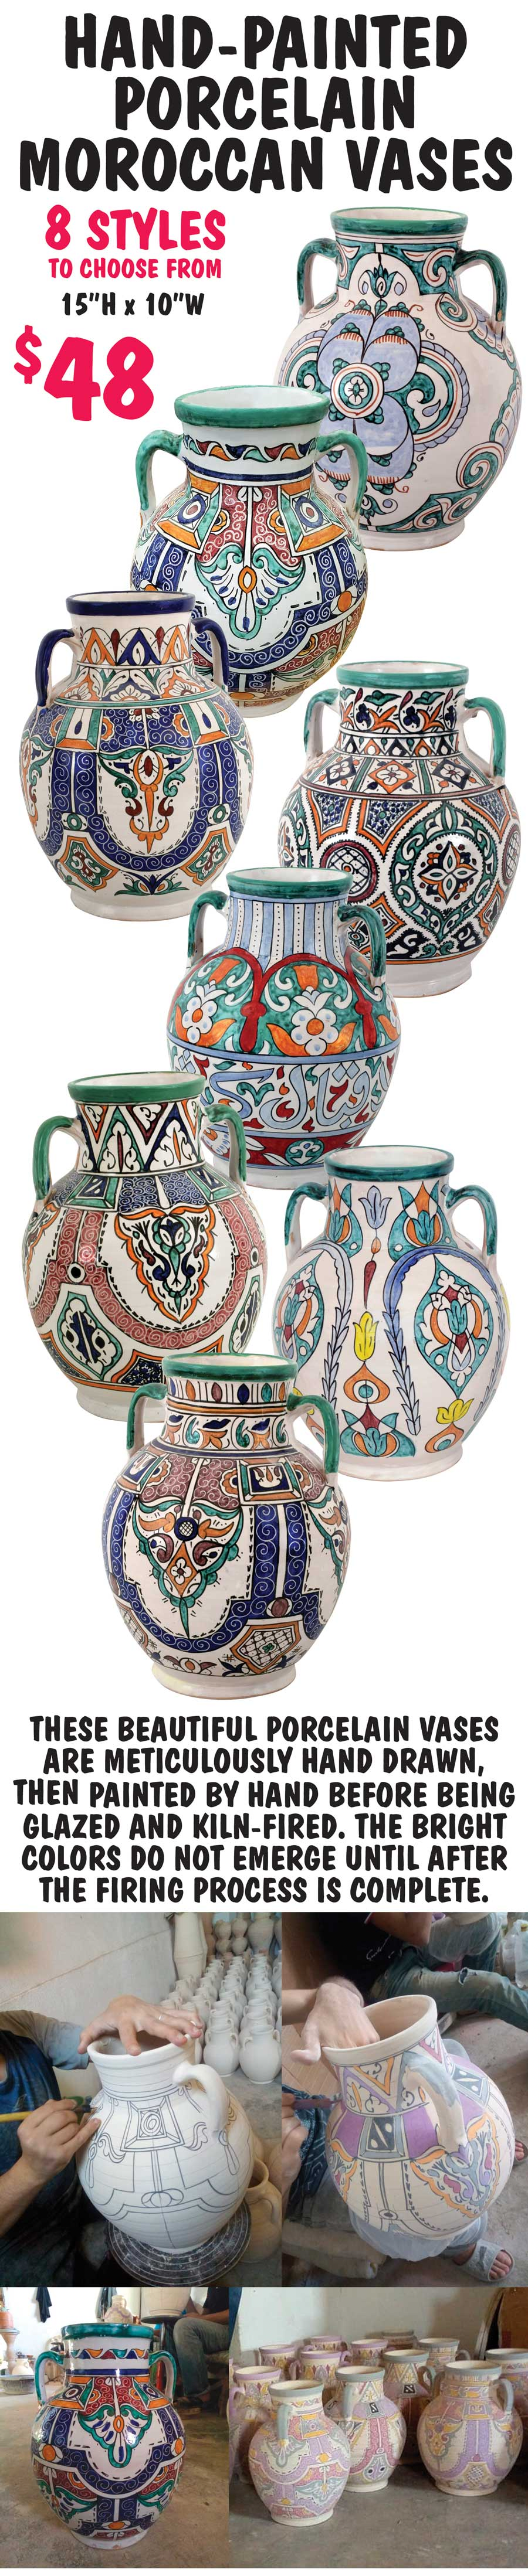 Hand-Painted Porcelain Moroccan Vases - 8 Styles - $48